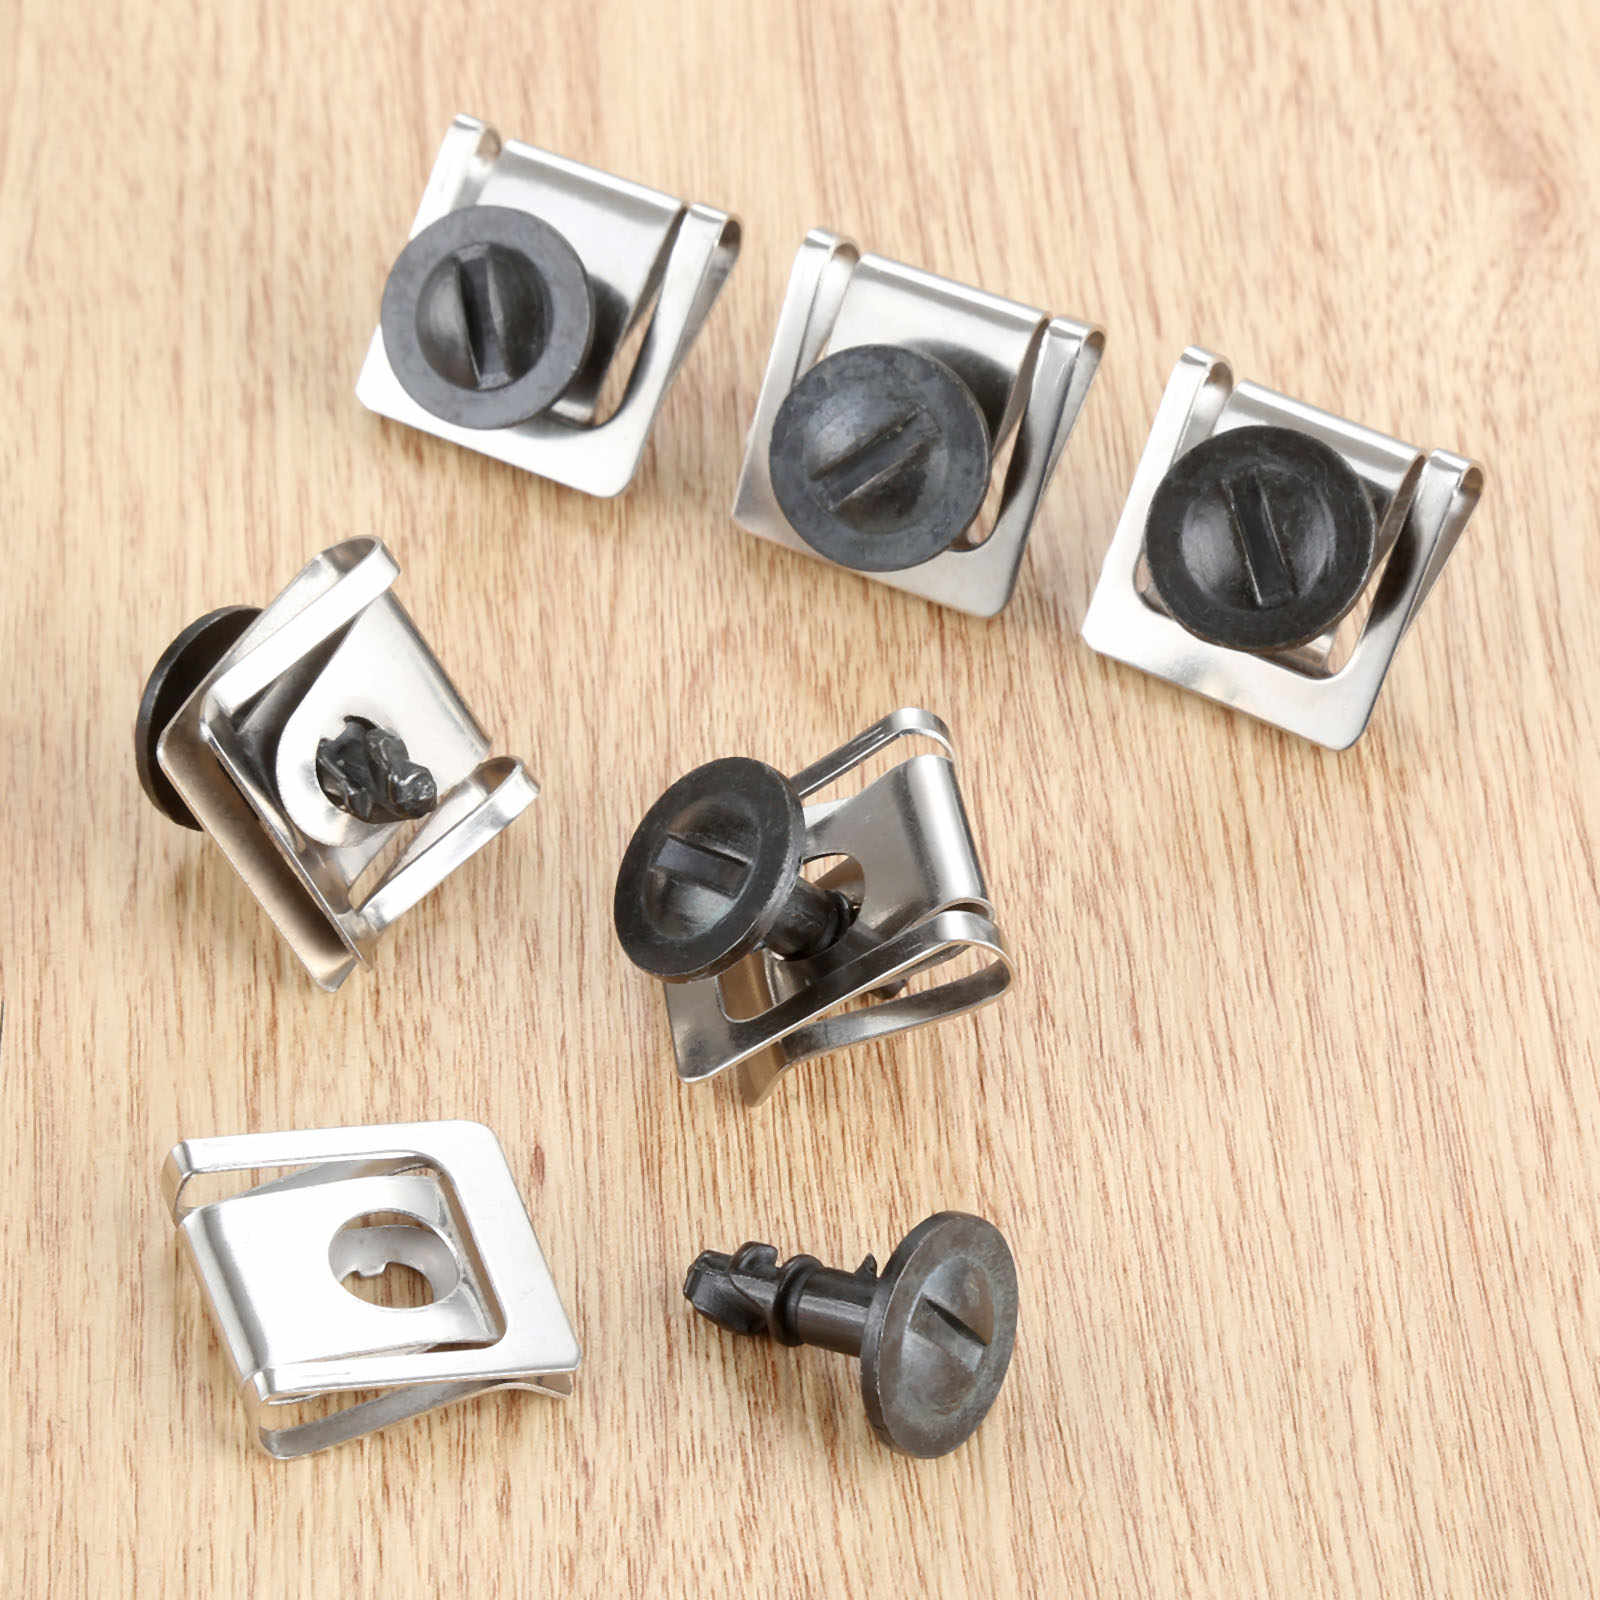 20X for VW Passat Lupo Engine Cover Undertray  Guard Torx Socket Head clips